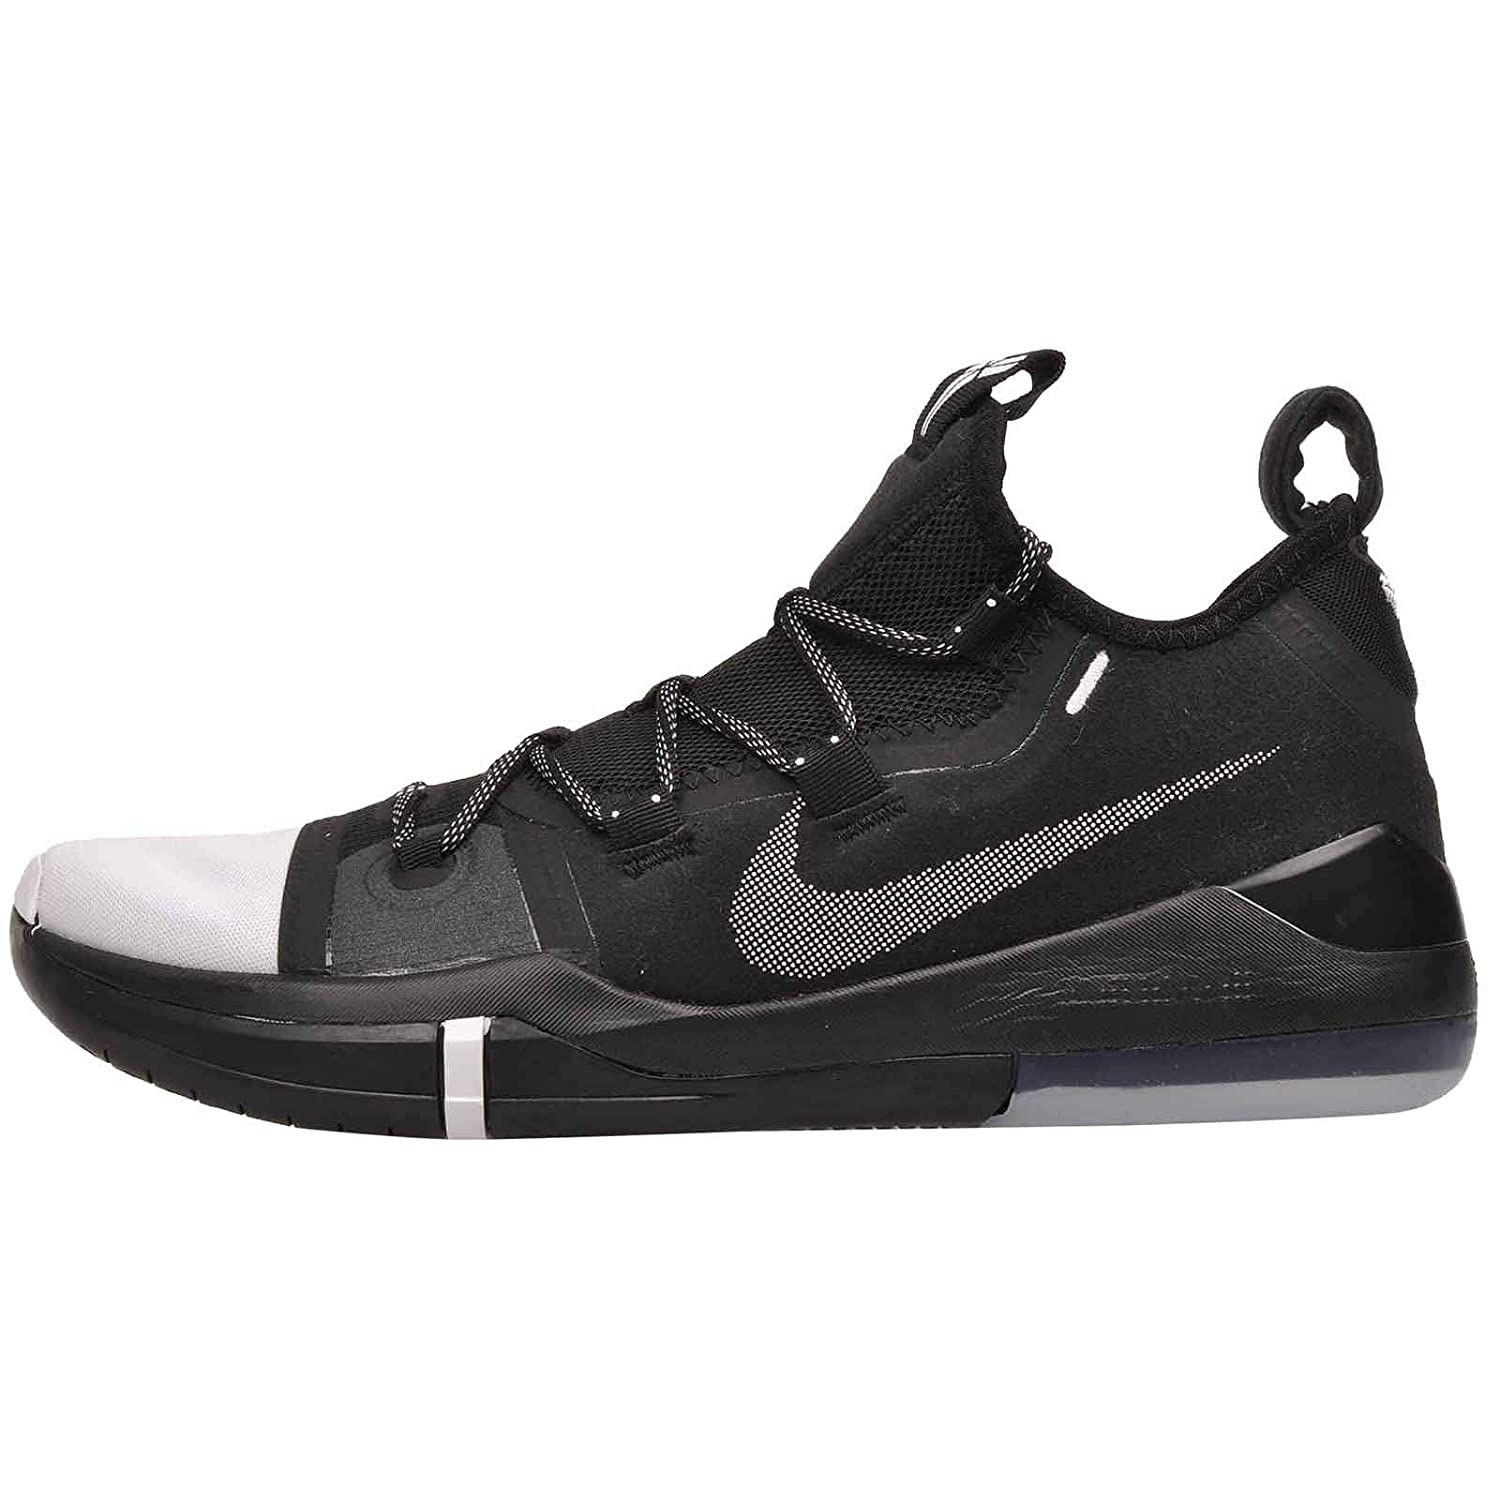 online retailer 92a2e d545f Amazon.com | Nike Men's Kobe AD Basketball Shoe | Basketball